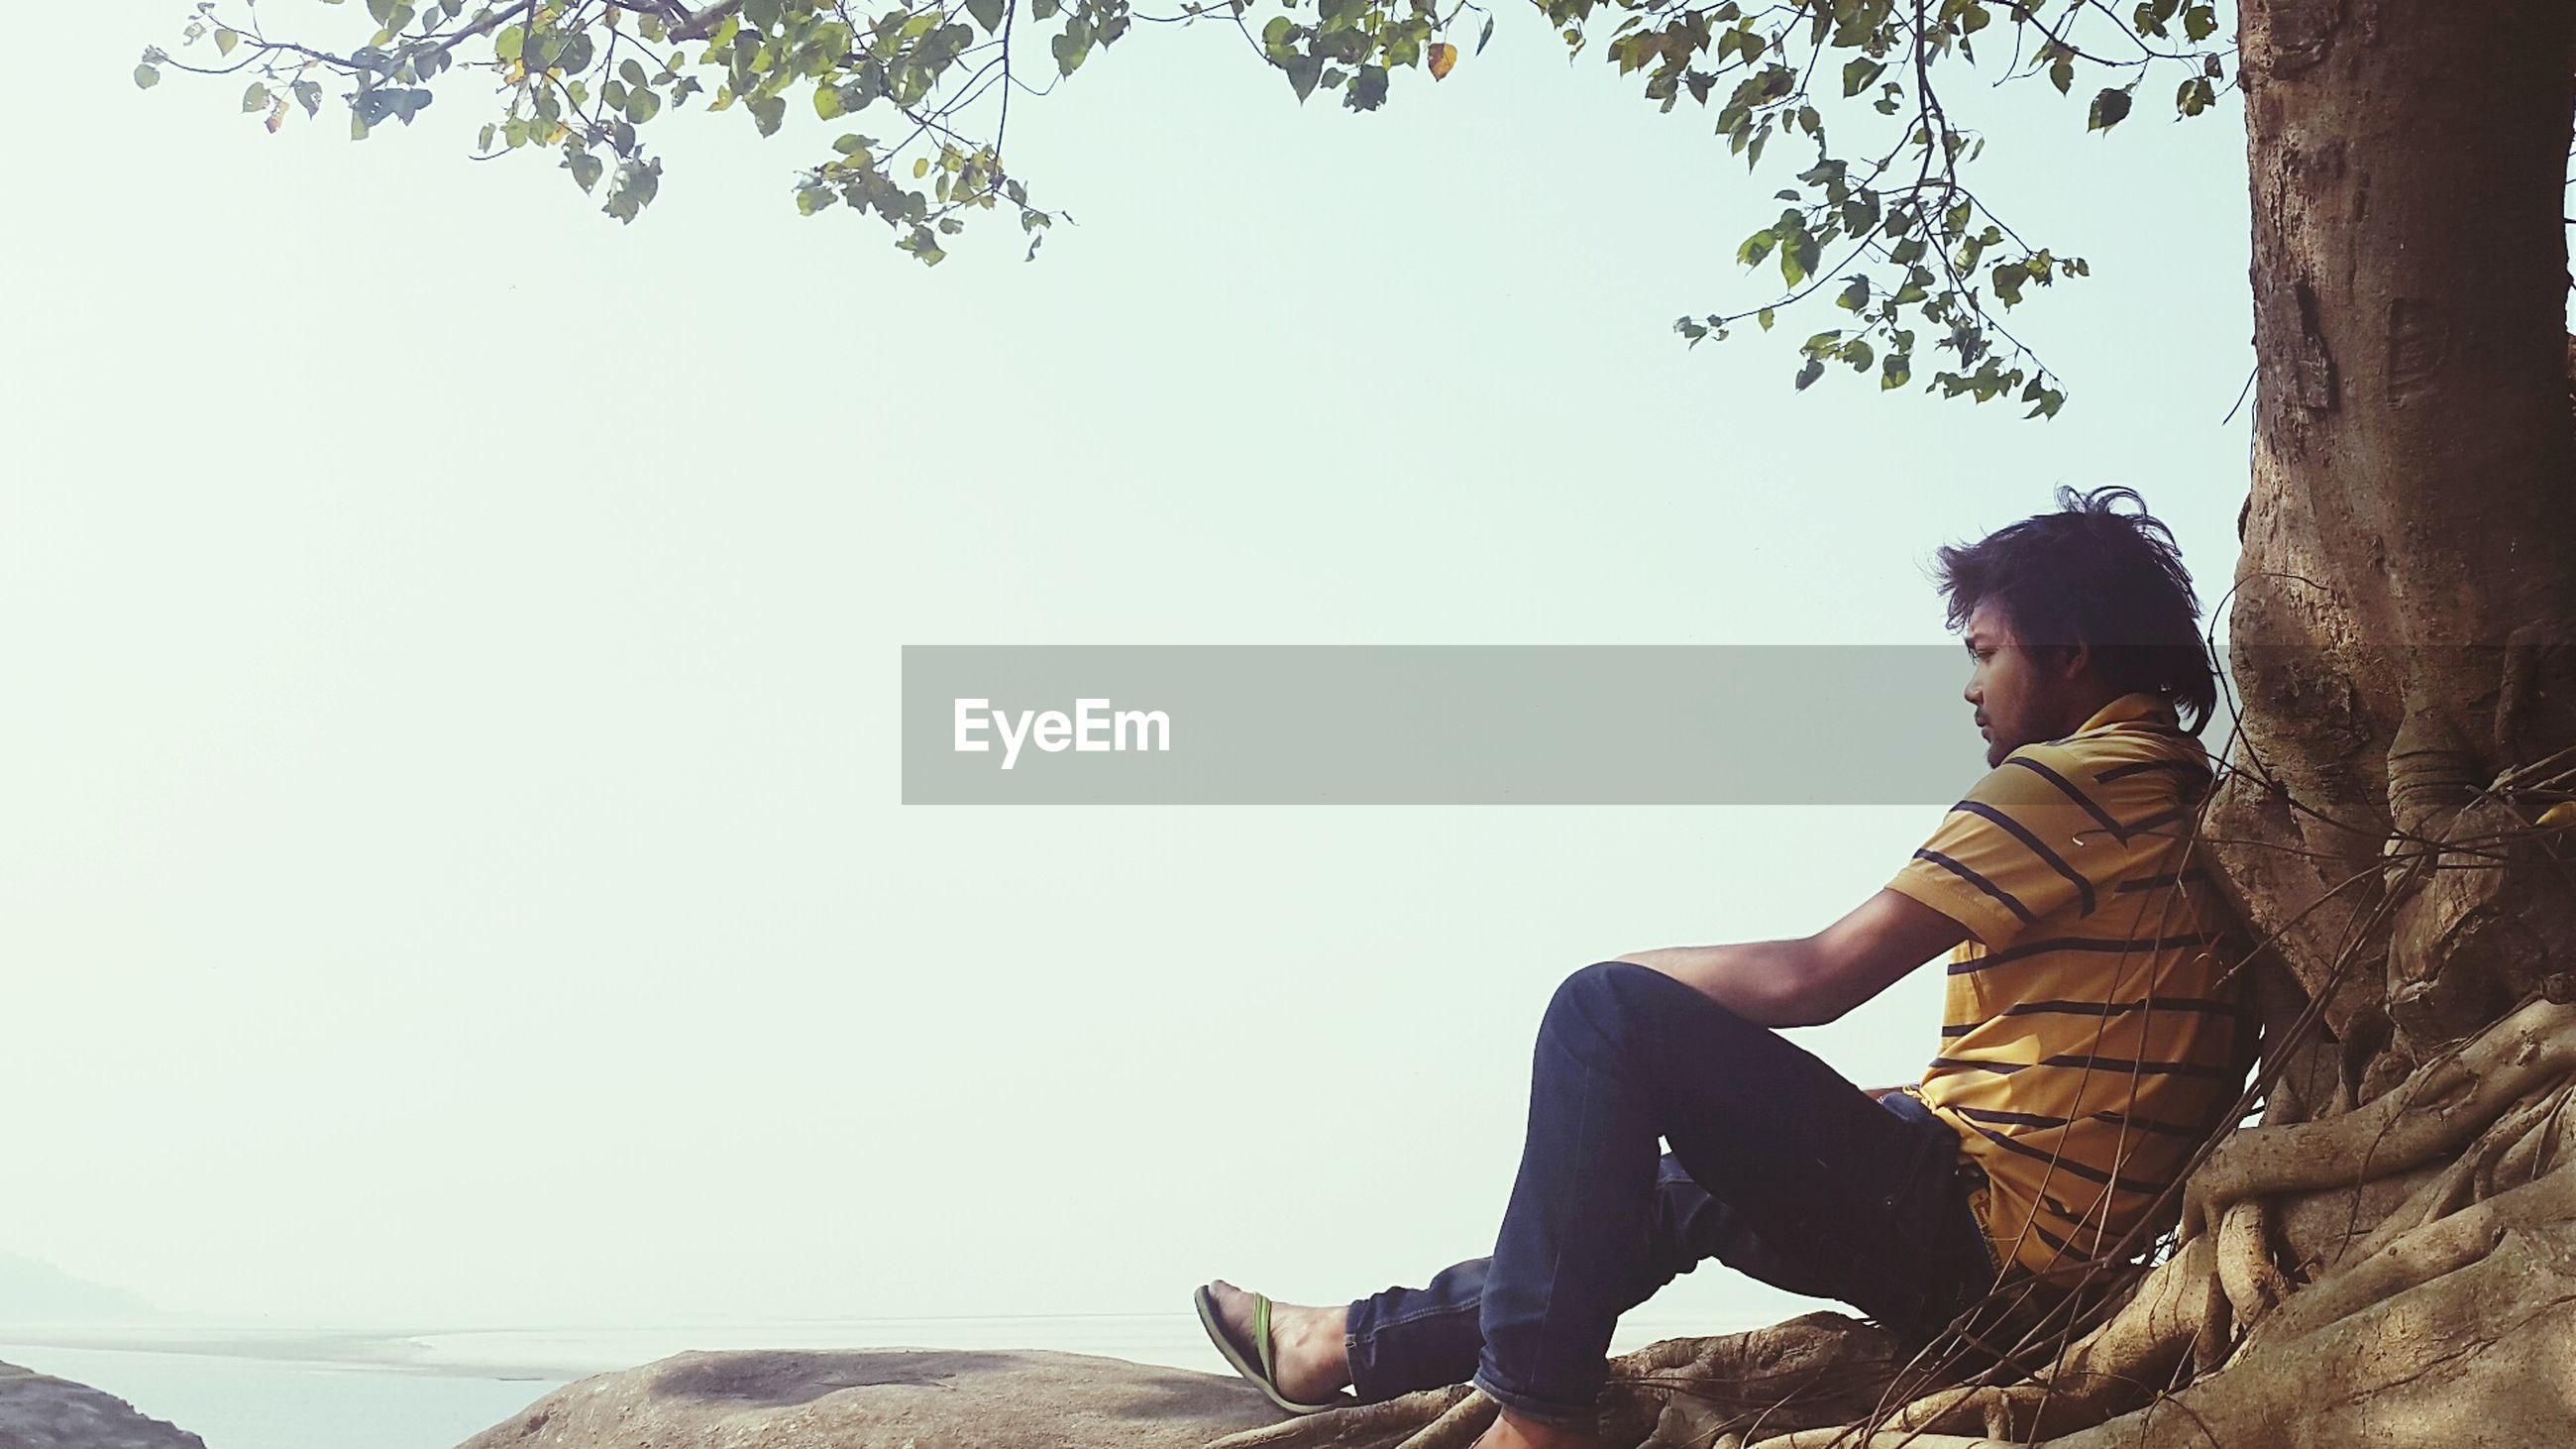 lifestyles, leisure activity, young adult, sitting, clear sky, young men, standing, casual clothing, men, relaxation, side view, three quarter length, waist up, full length, copy space, person